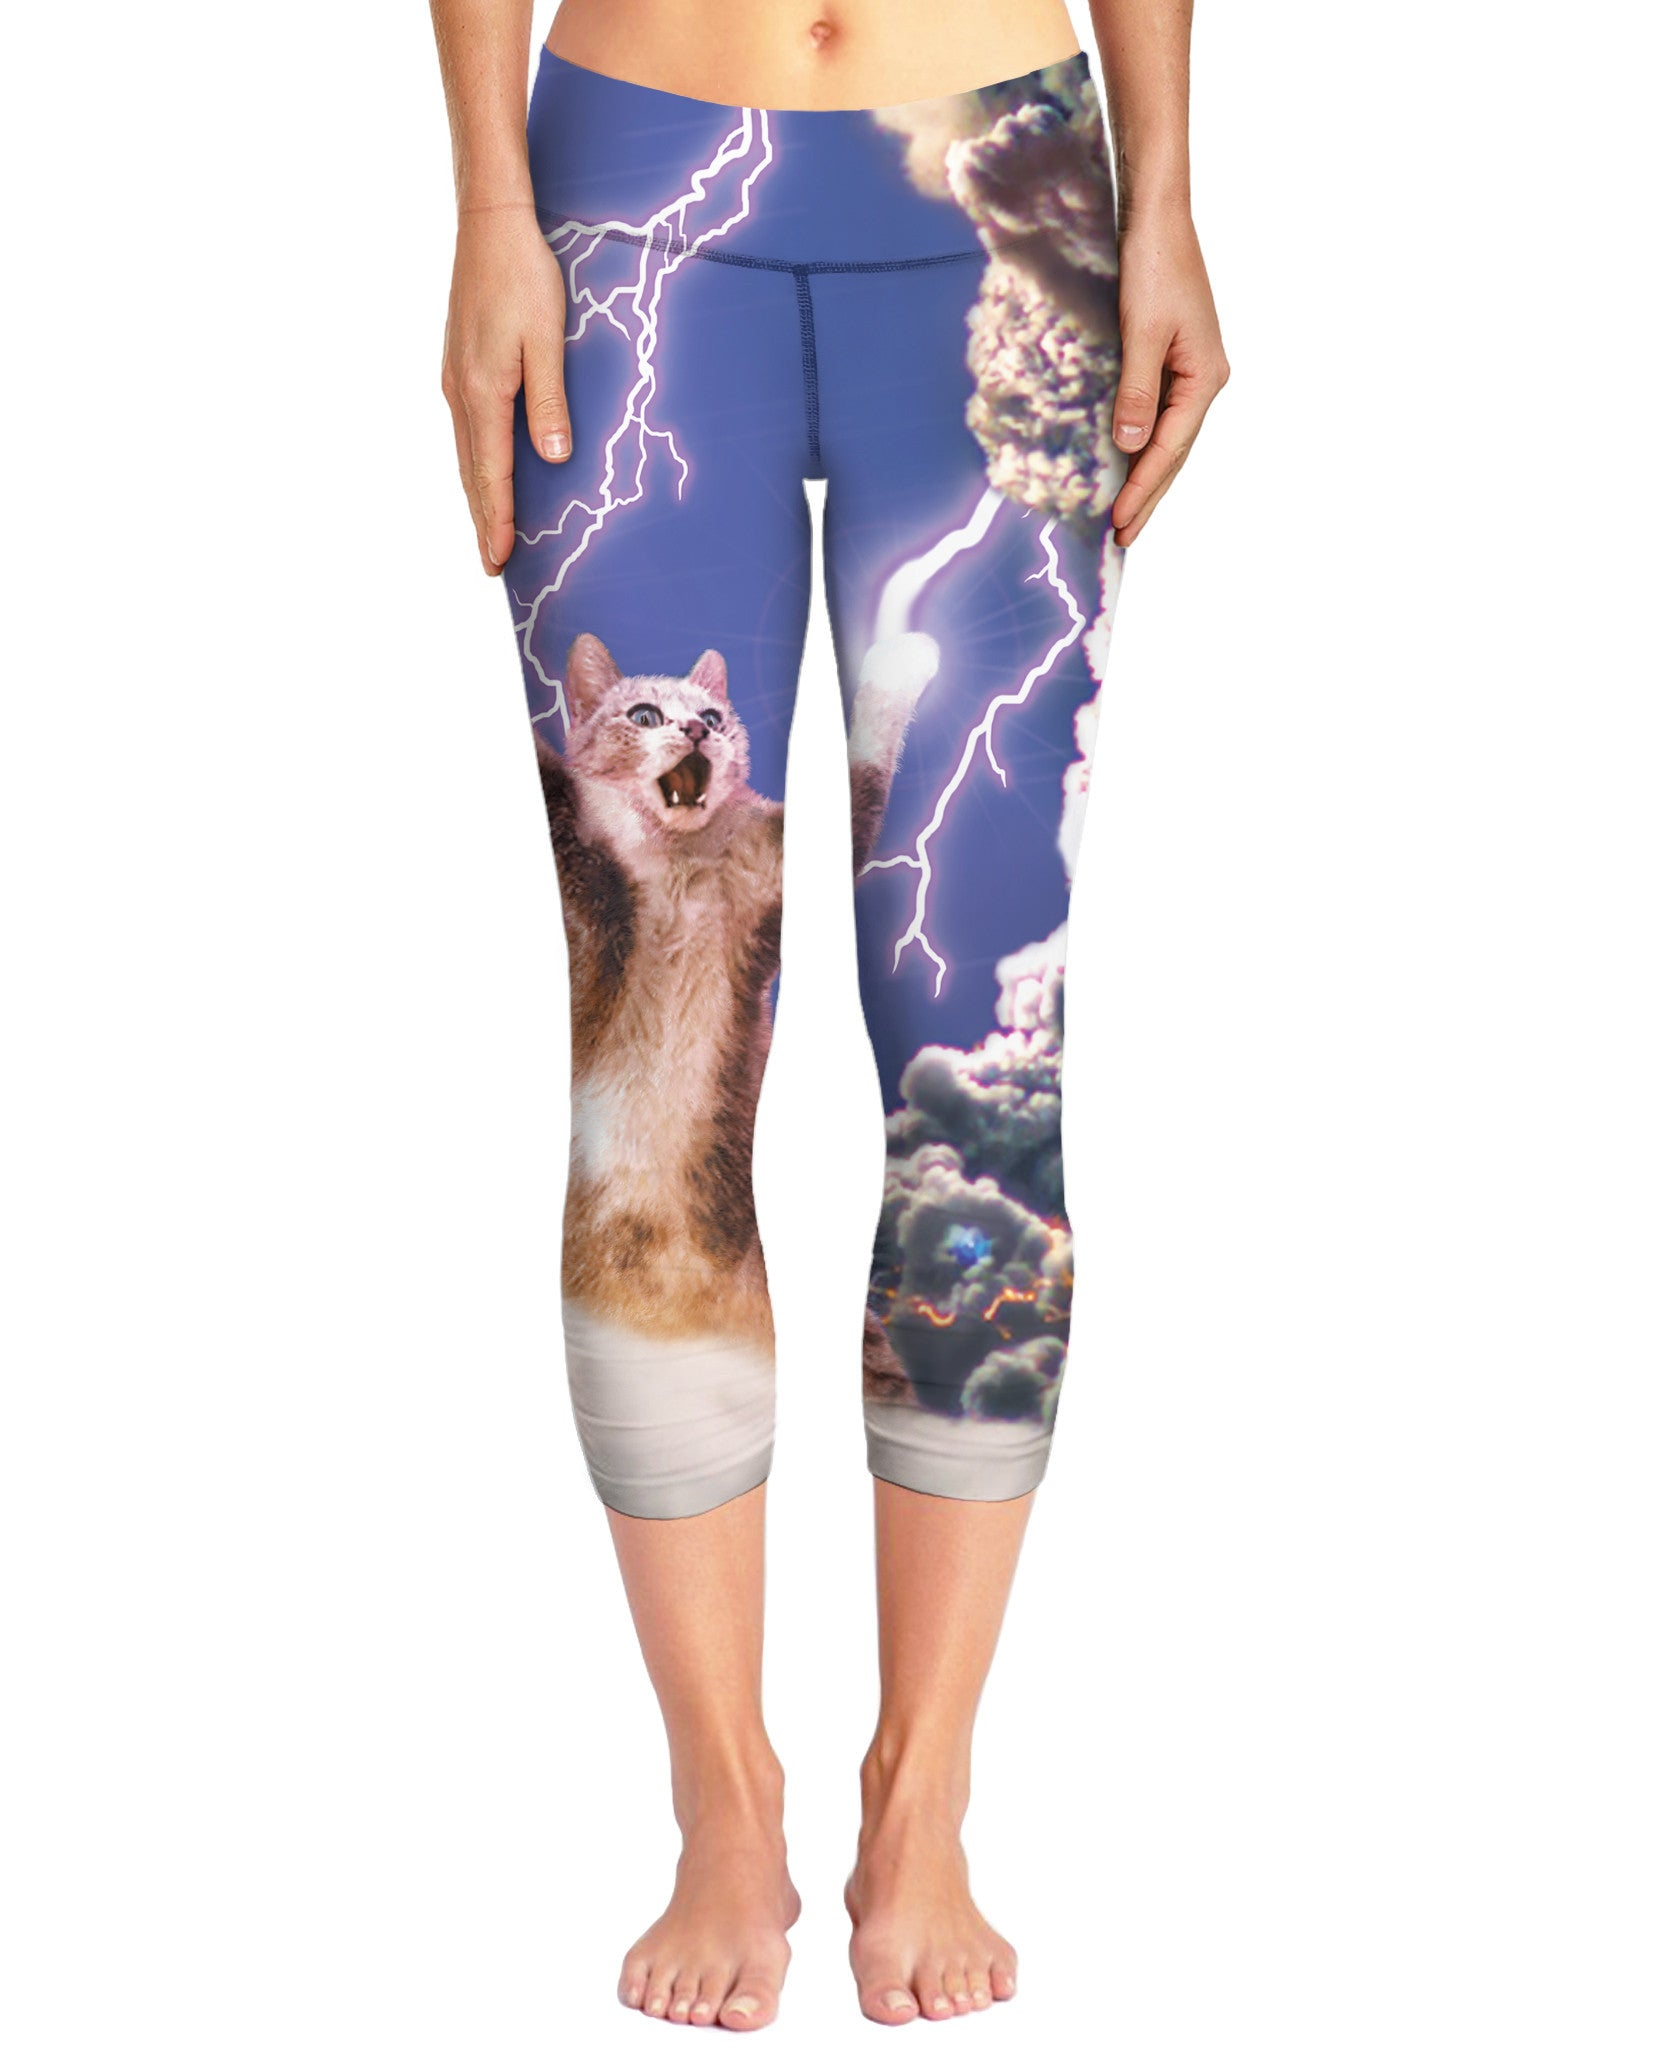 Thundercat All-Over Print Capri Yoga Pants - Love Kitty Cat